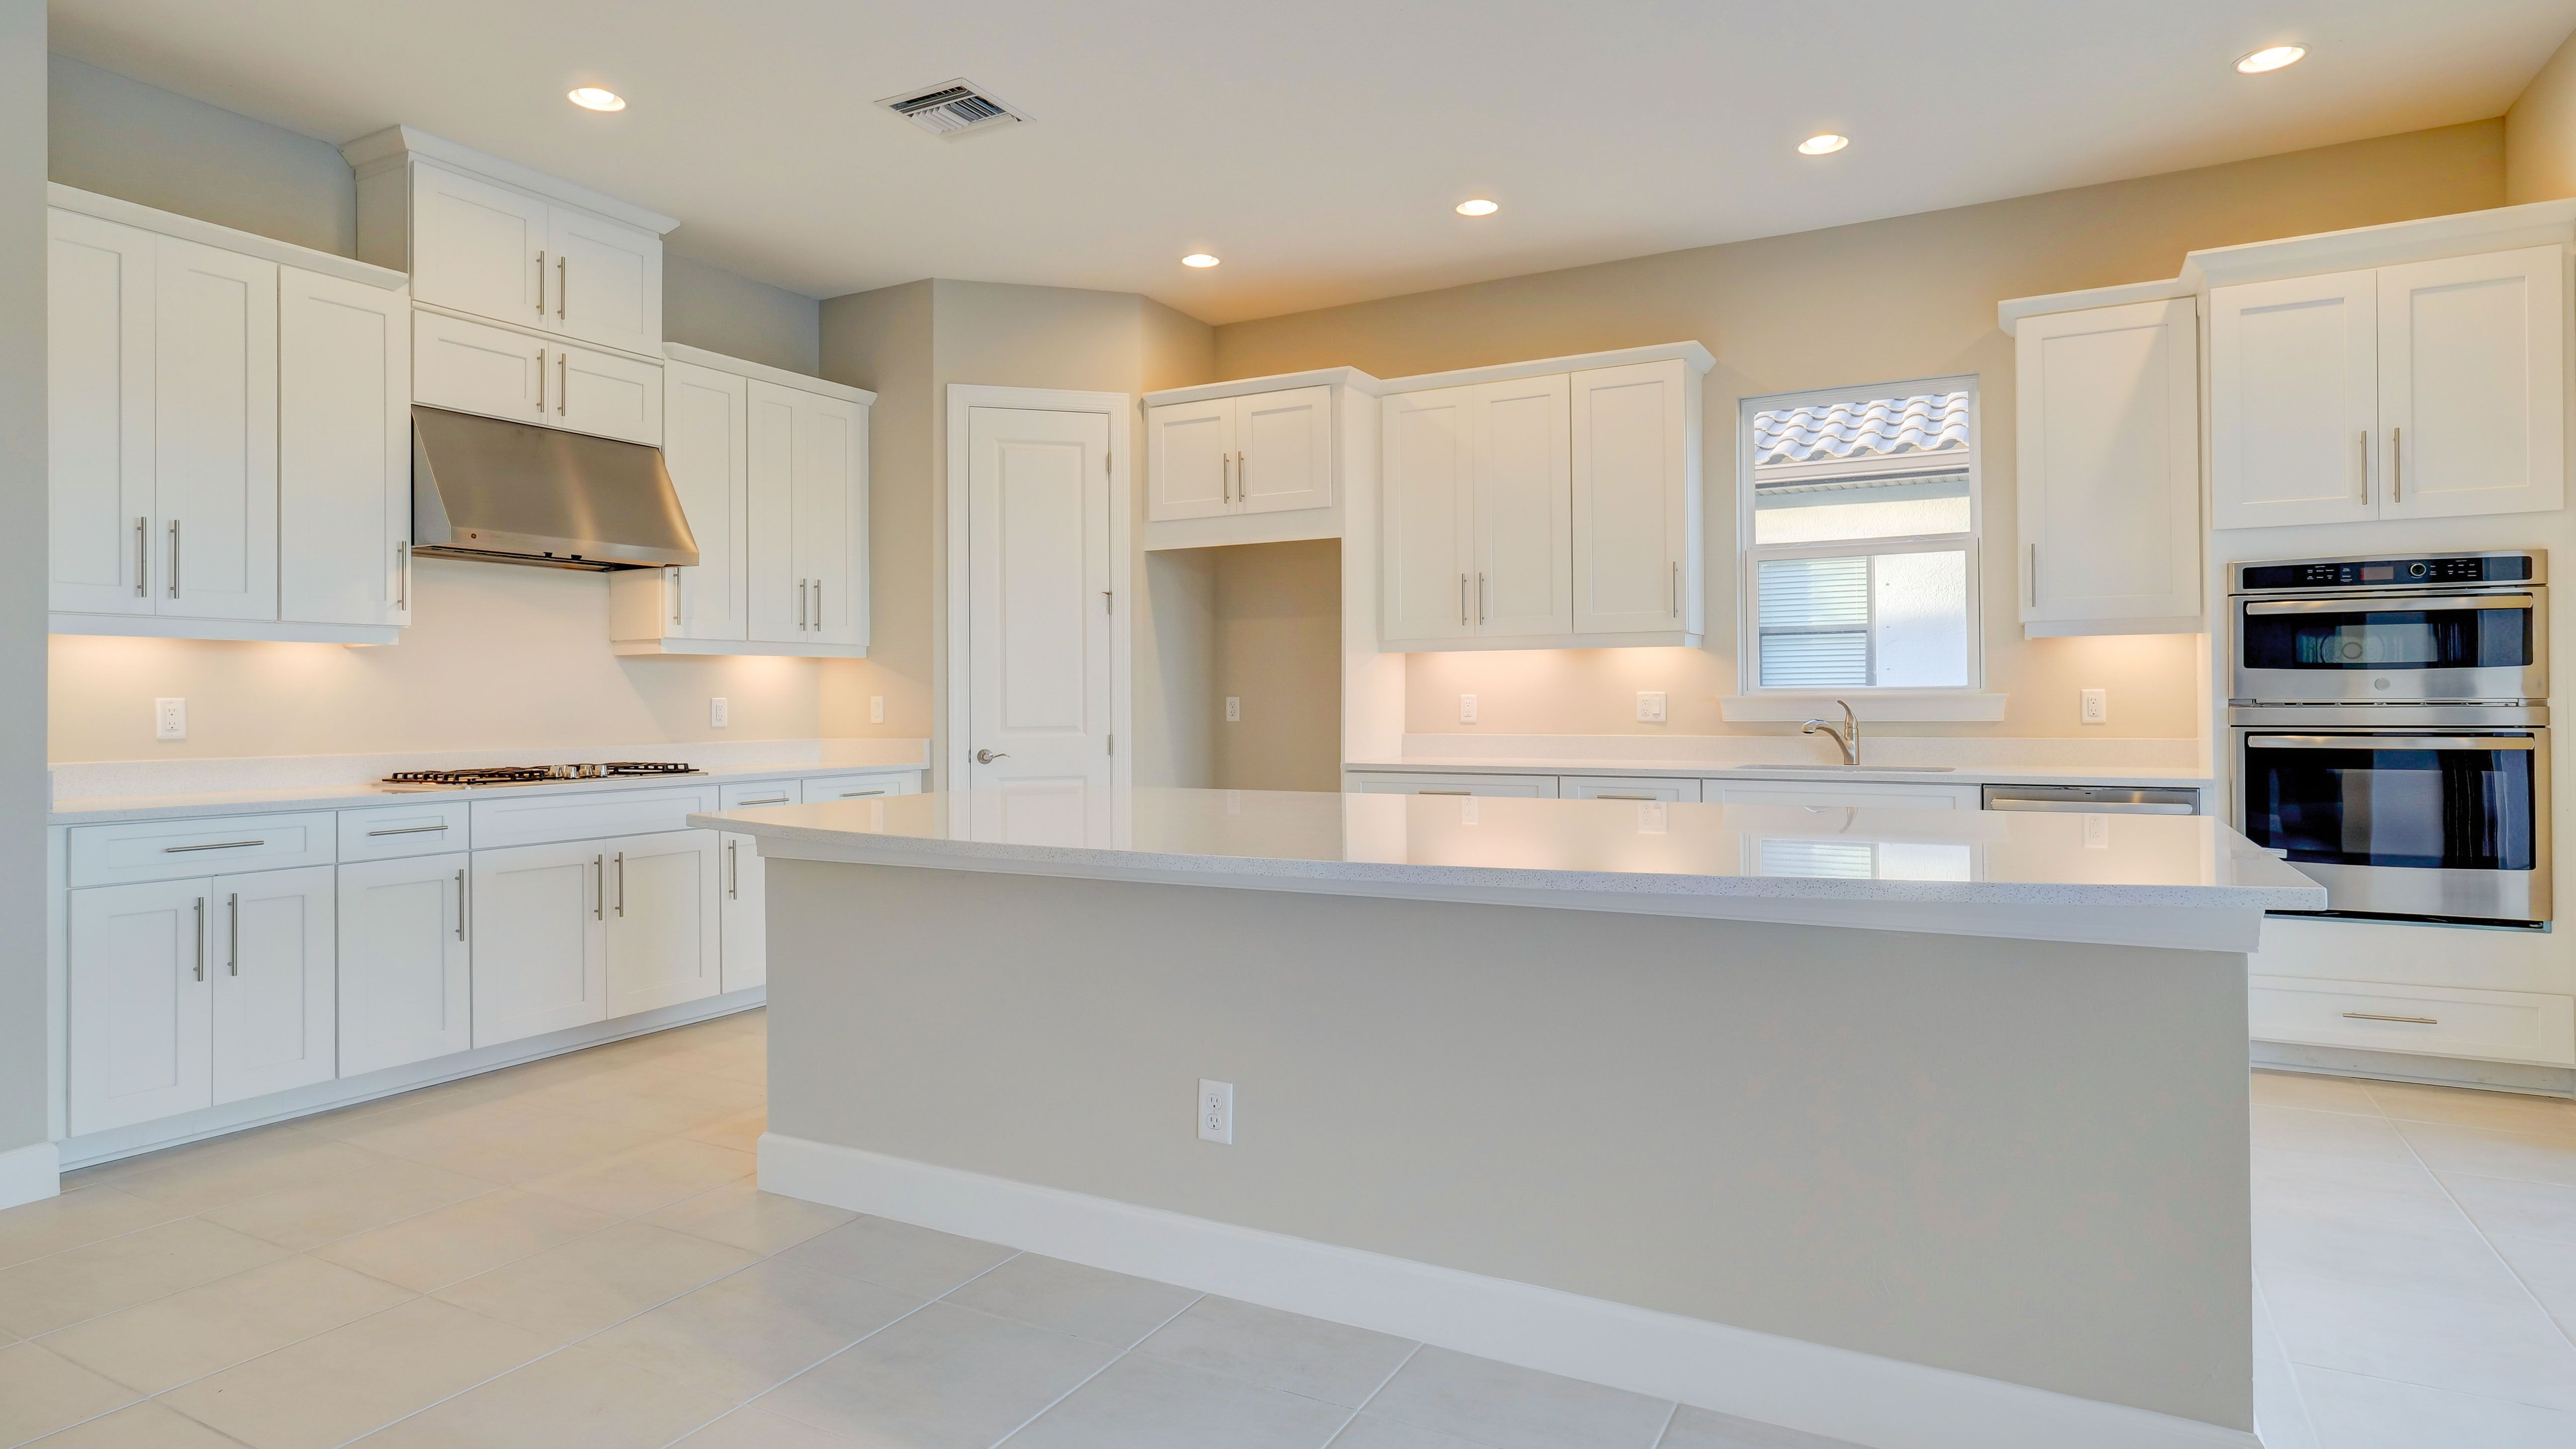 Kitchen featured in the Pallazio Plan By Taylor Morrison in Naples, FL